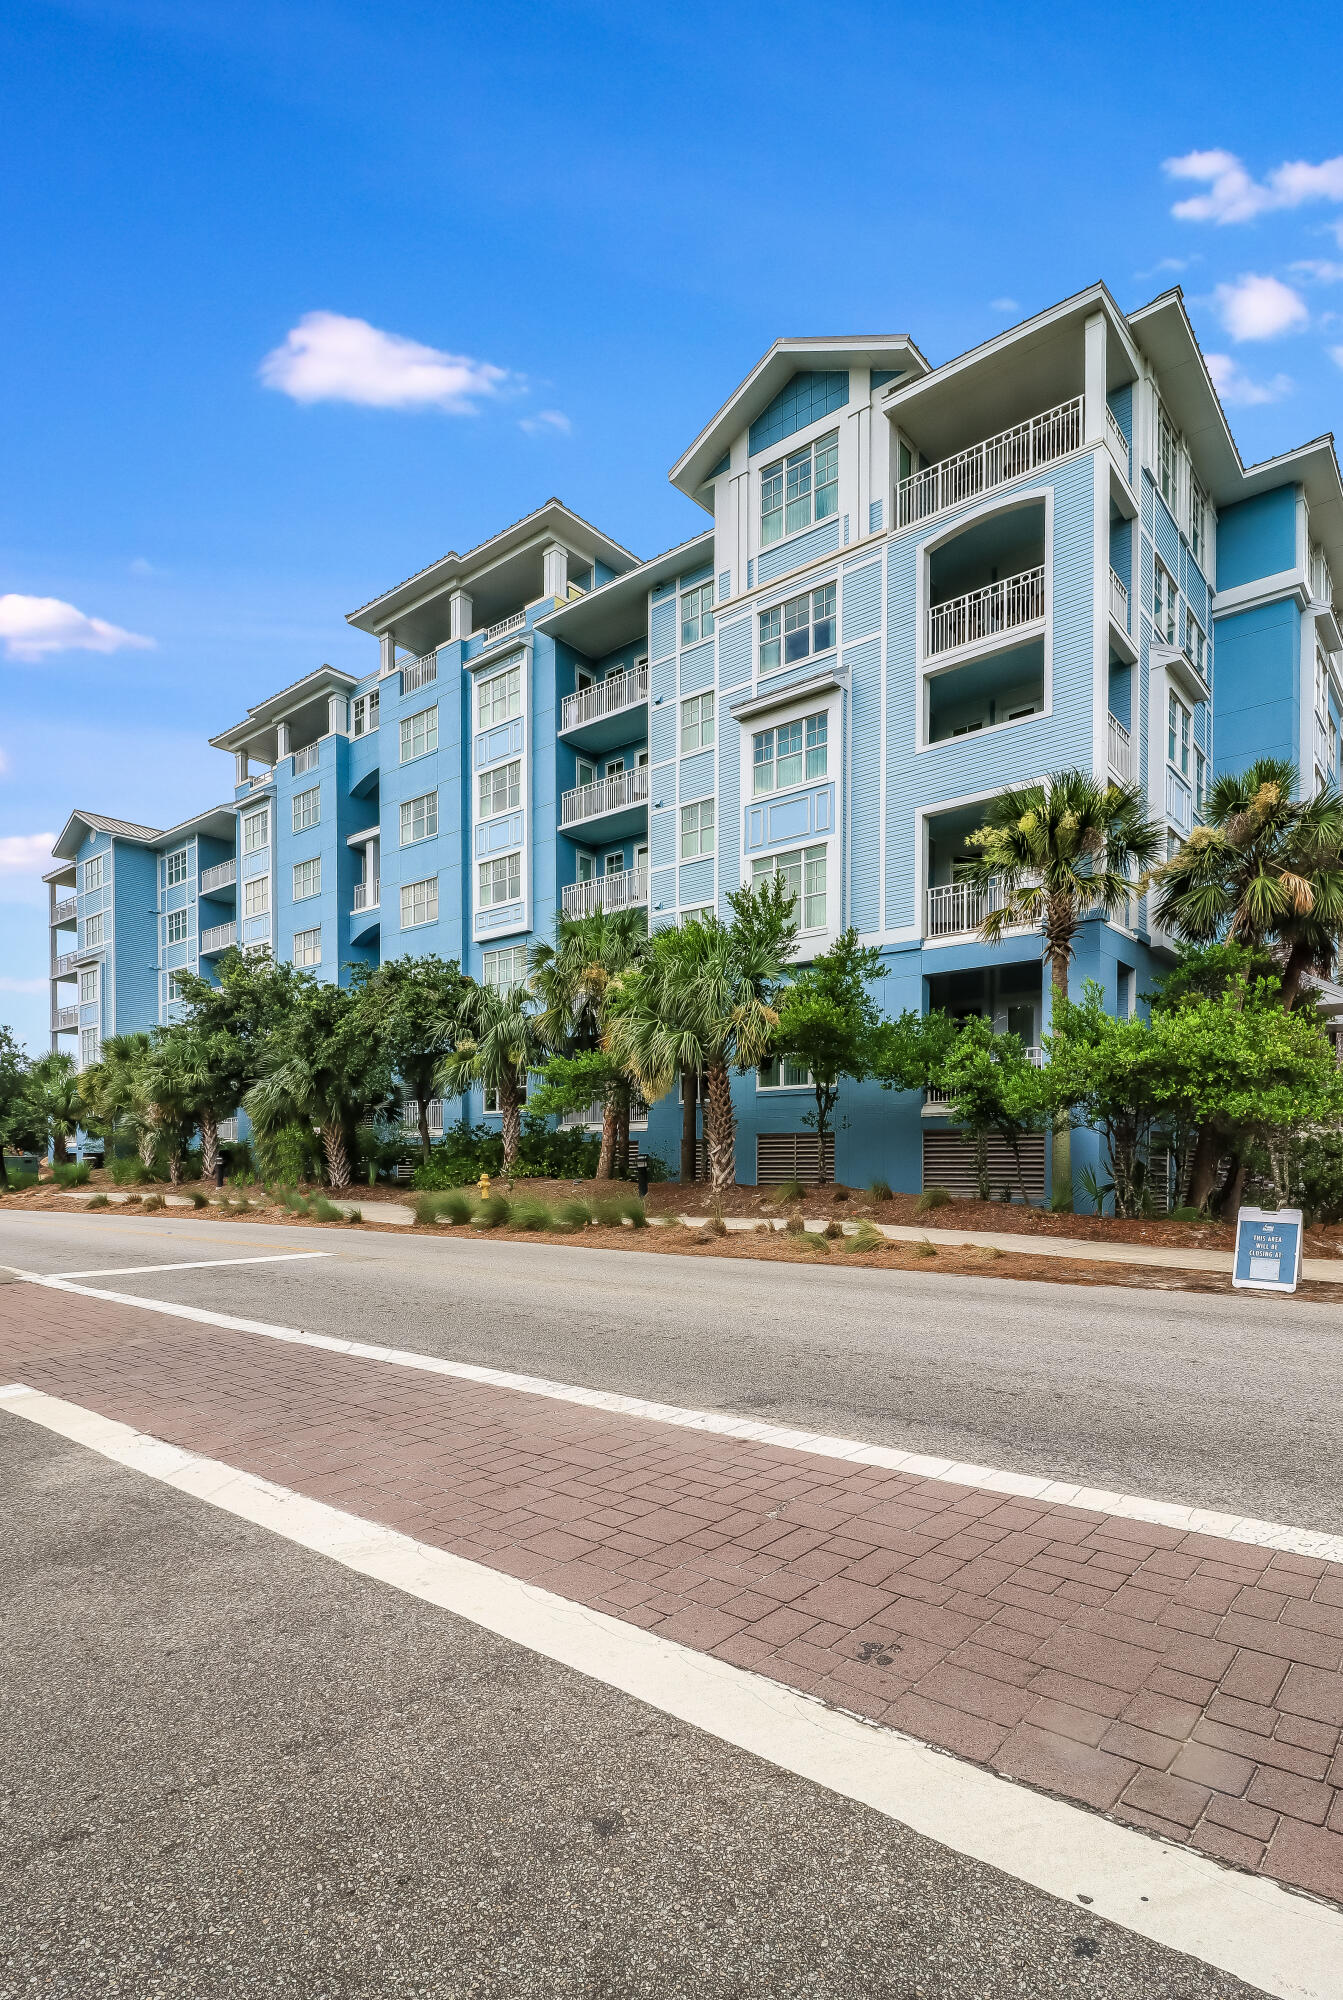 5804 Palmetto Drive, Isle of Palms, 29451, 3 Bedrooms Bedrooms, ,3 BathroomsBathrooms,Residential,For Sale,Palmetto Drive,21024562